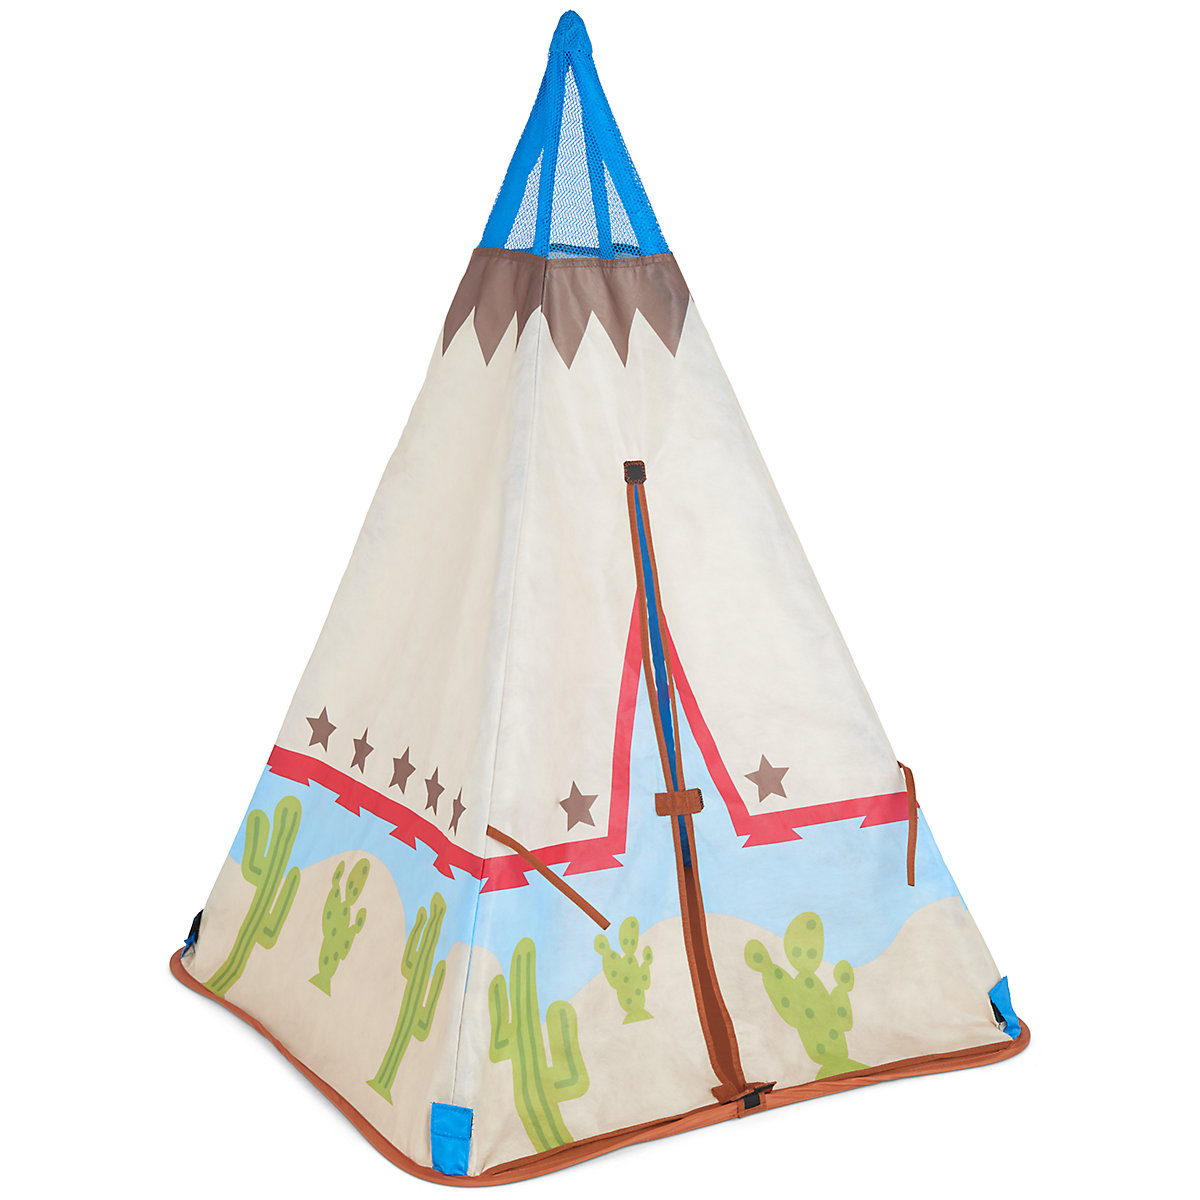 New ELC Boys and Girls Cowboy Teepee Toy From 2 years - Early Learning Centre Gifts